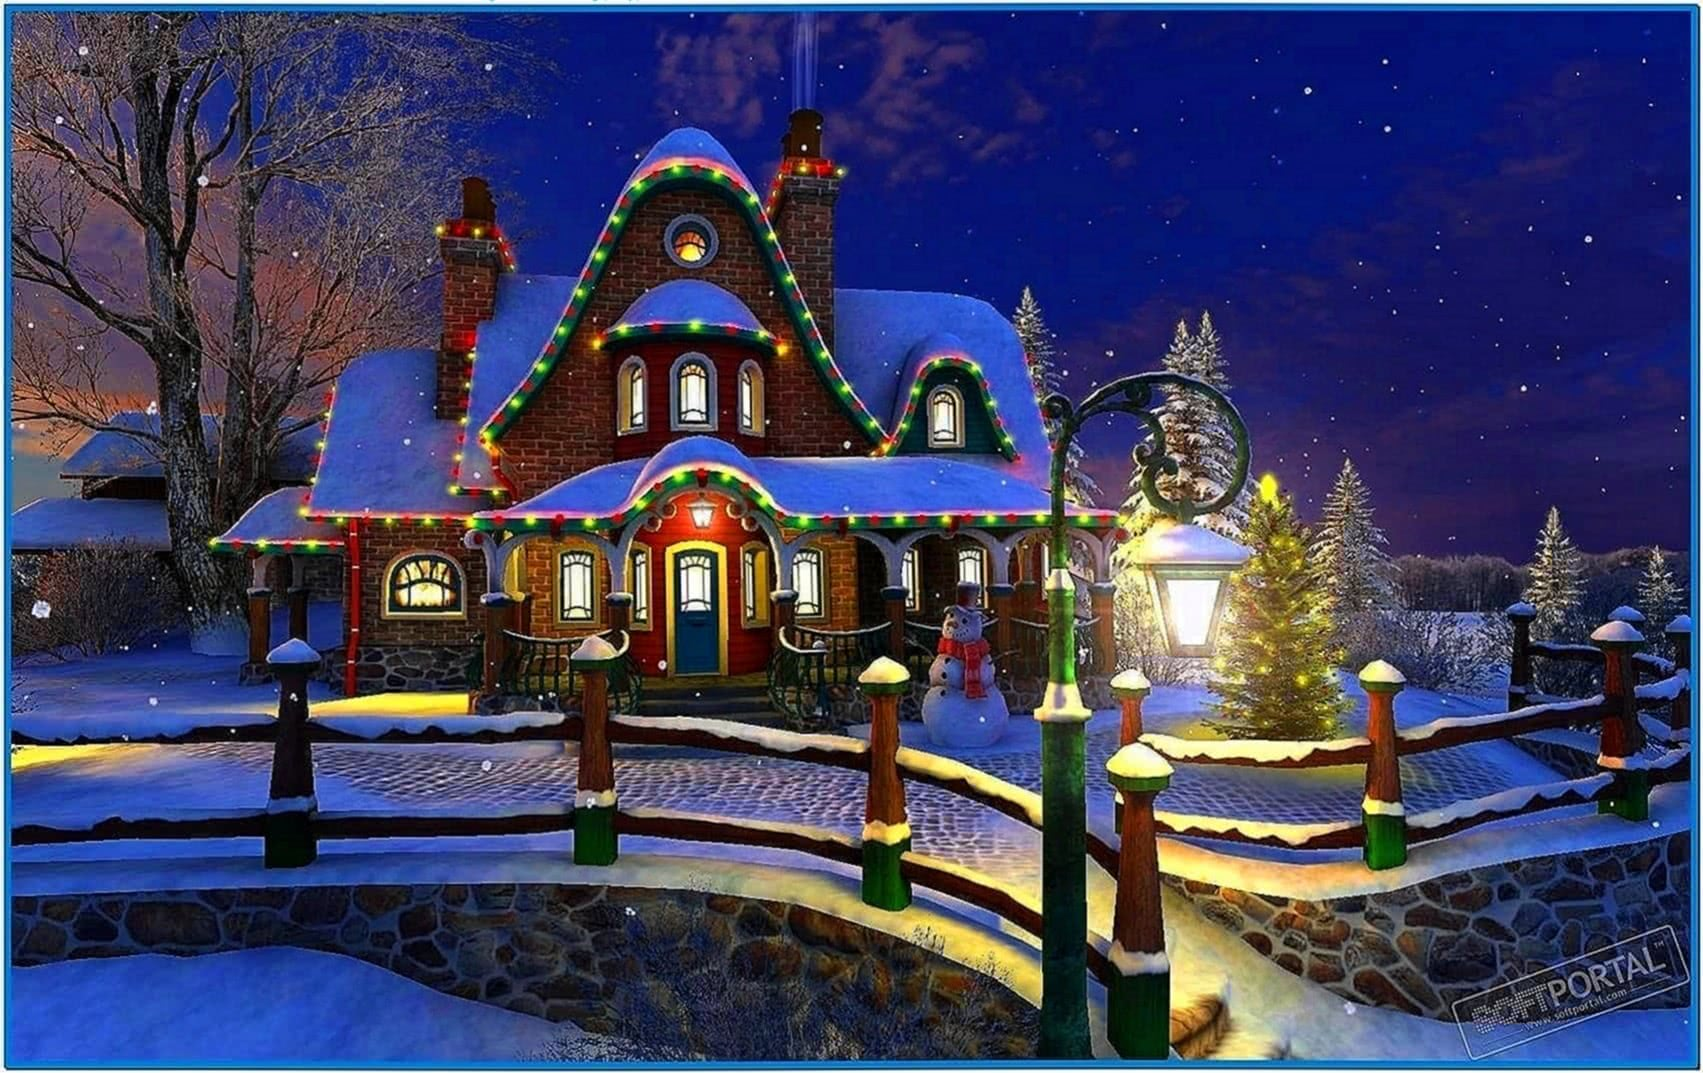 Download Free Download Christmas Wallpapers And: White Christmas 3d Screensaver 1.0